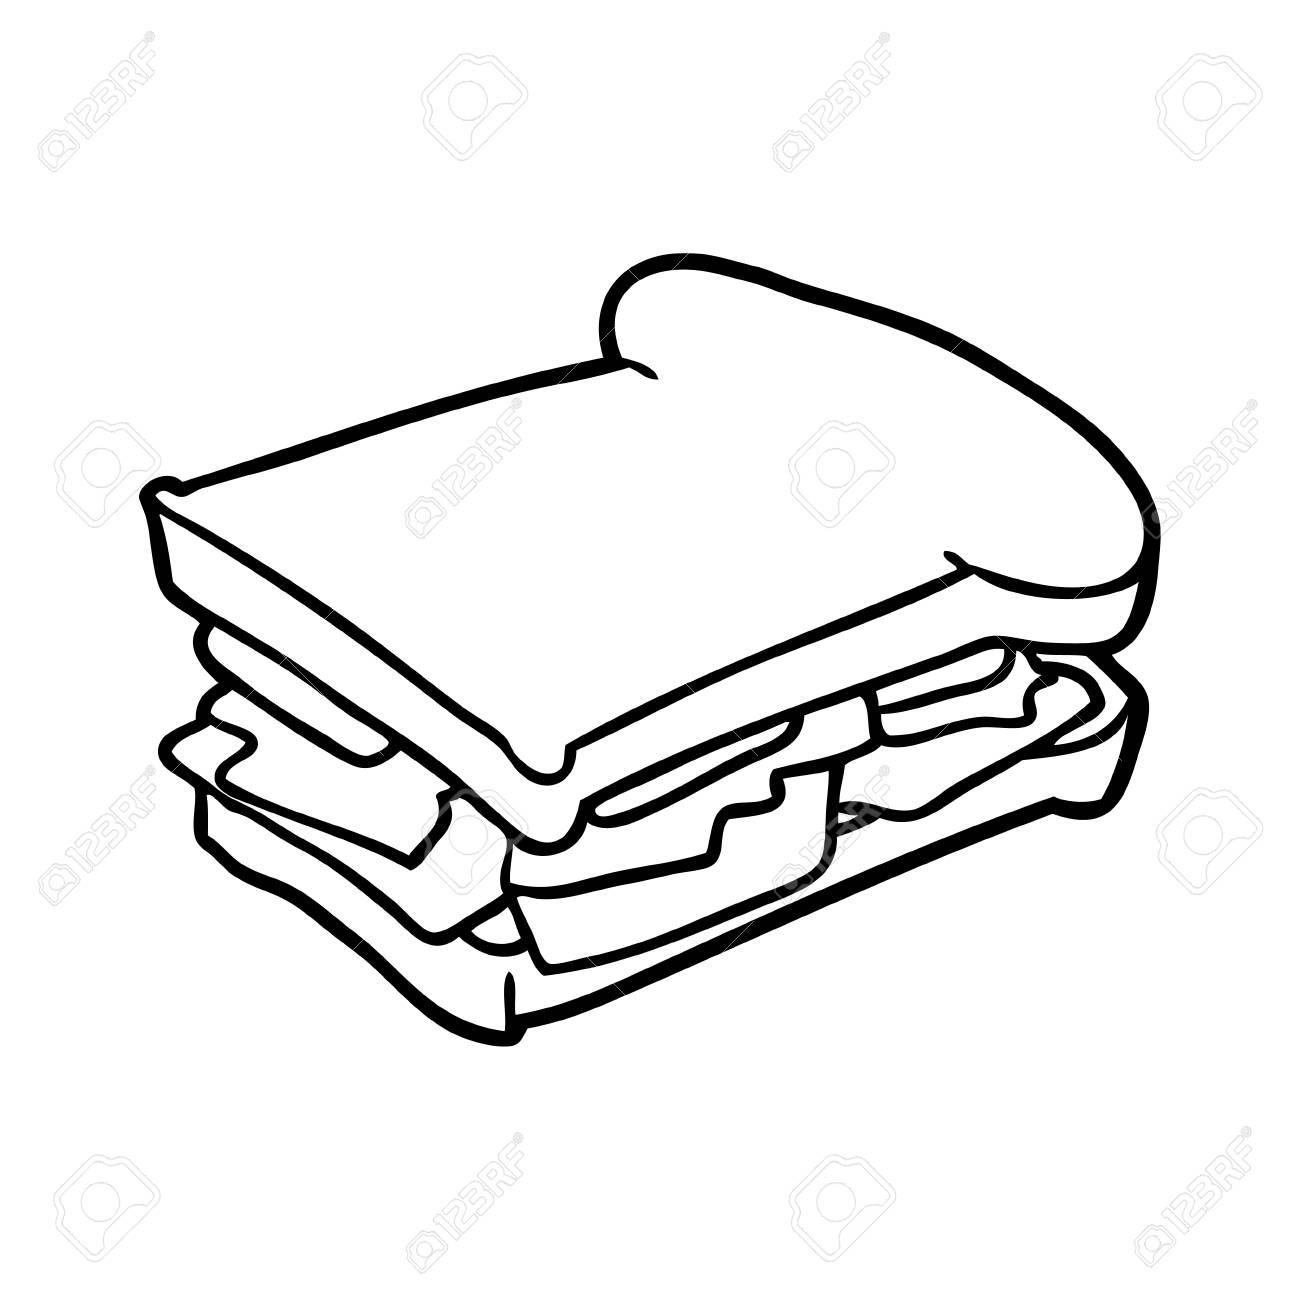 line drawing of a ham cheese tomato sandwich royalty free cliparts vectors and stock illustration image 94936554 123rf com